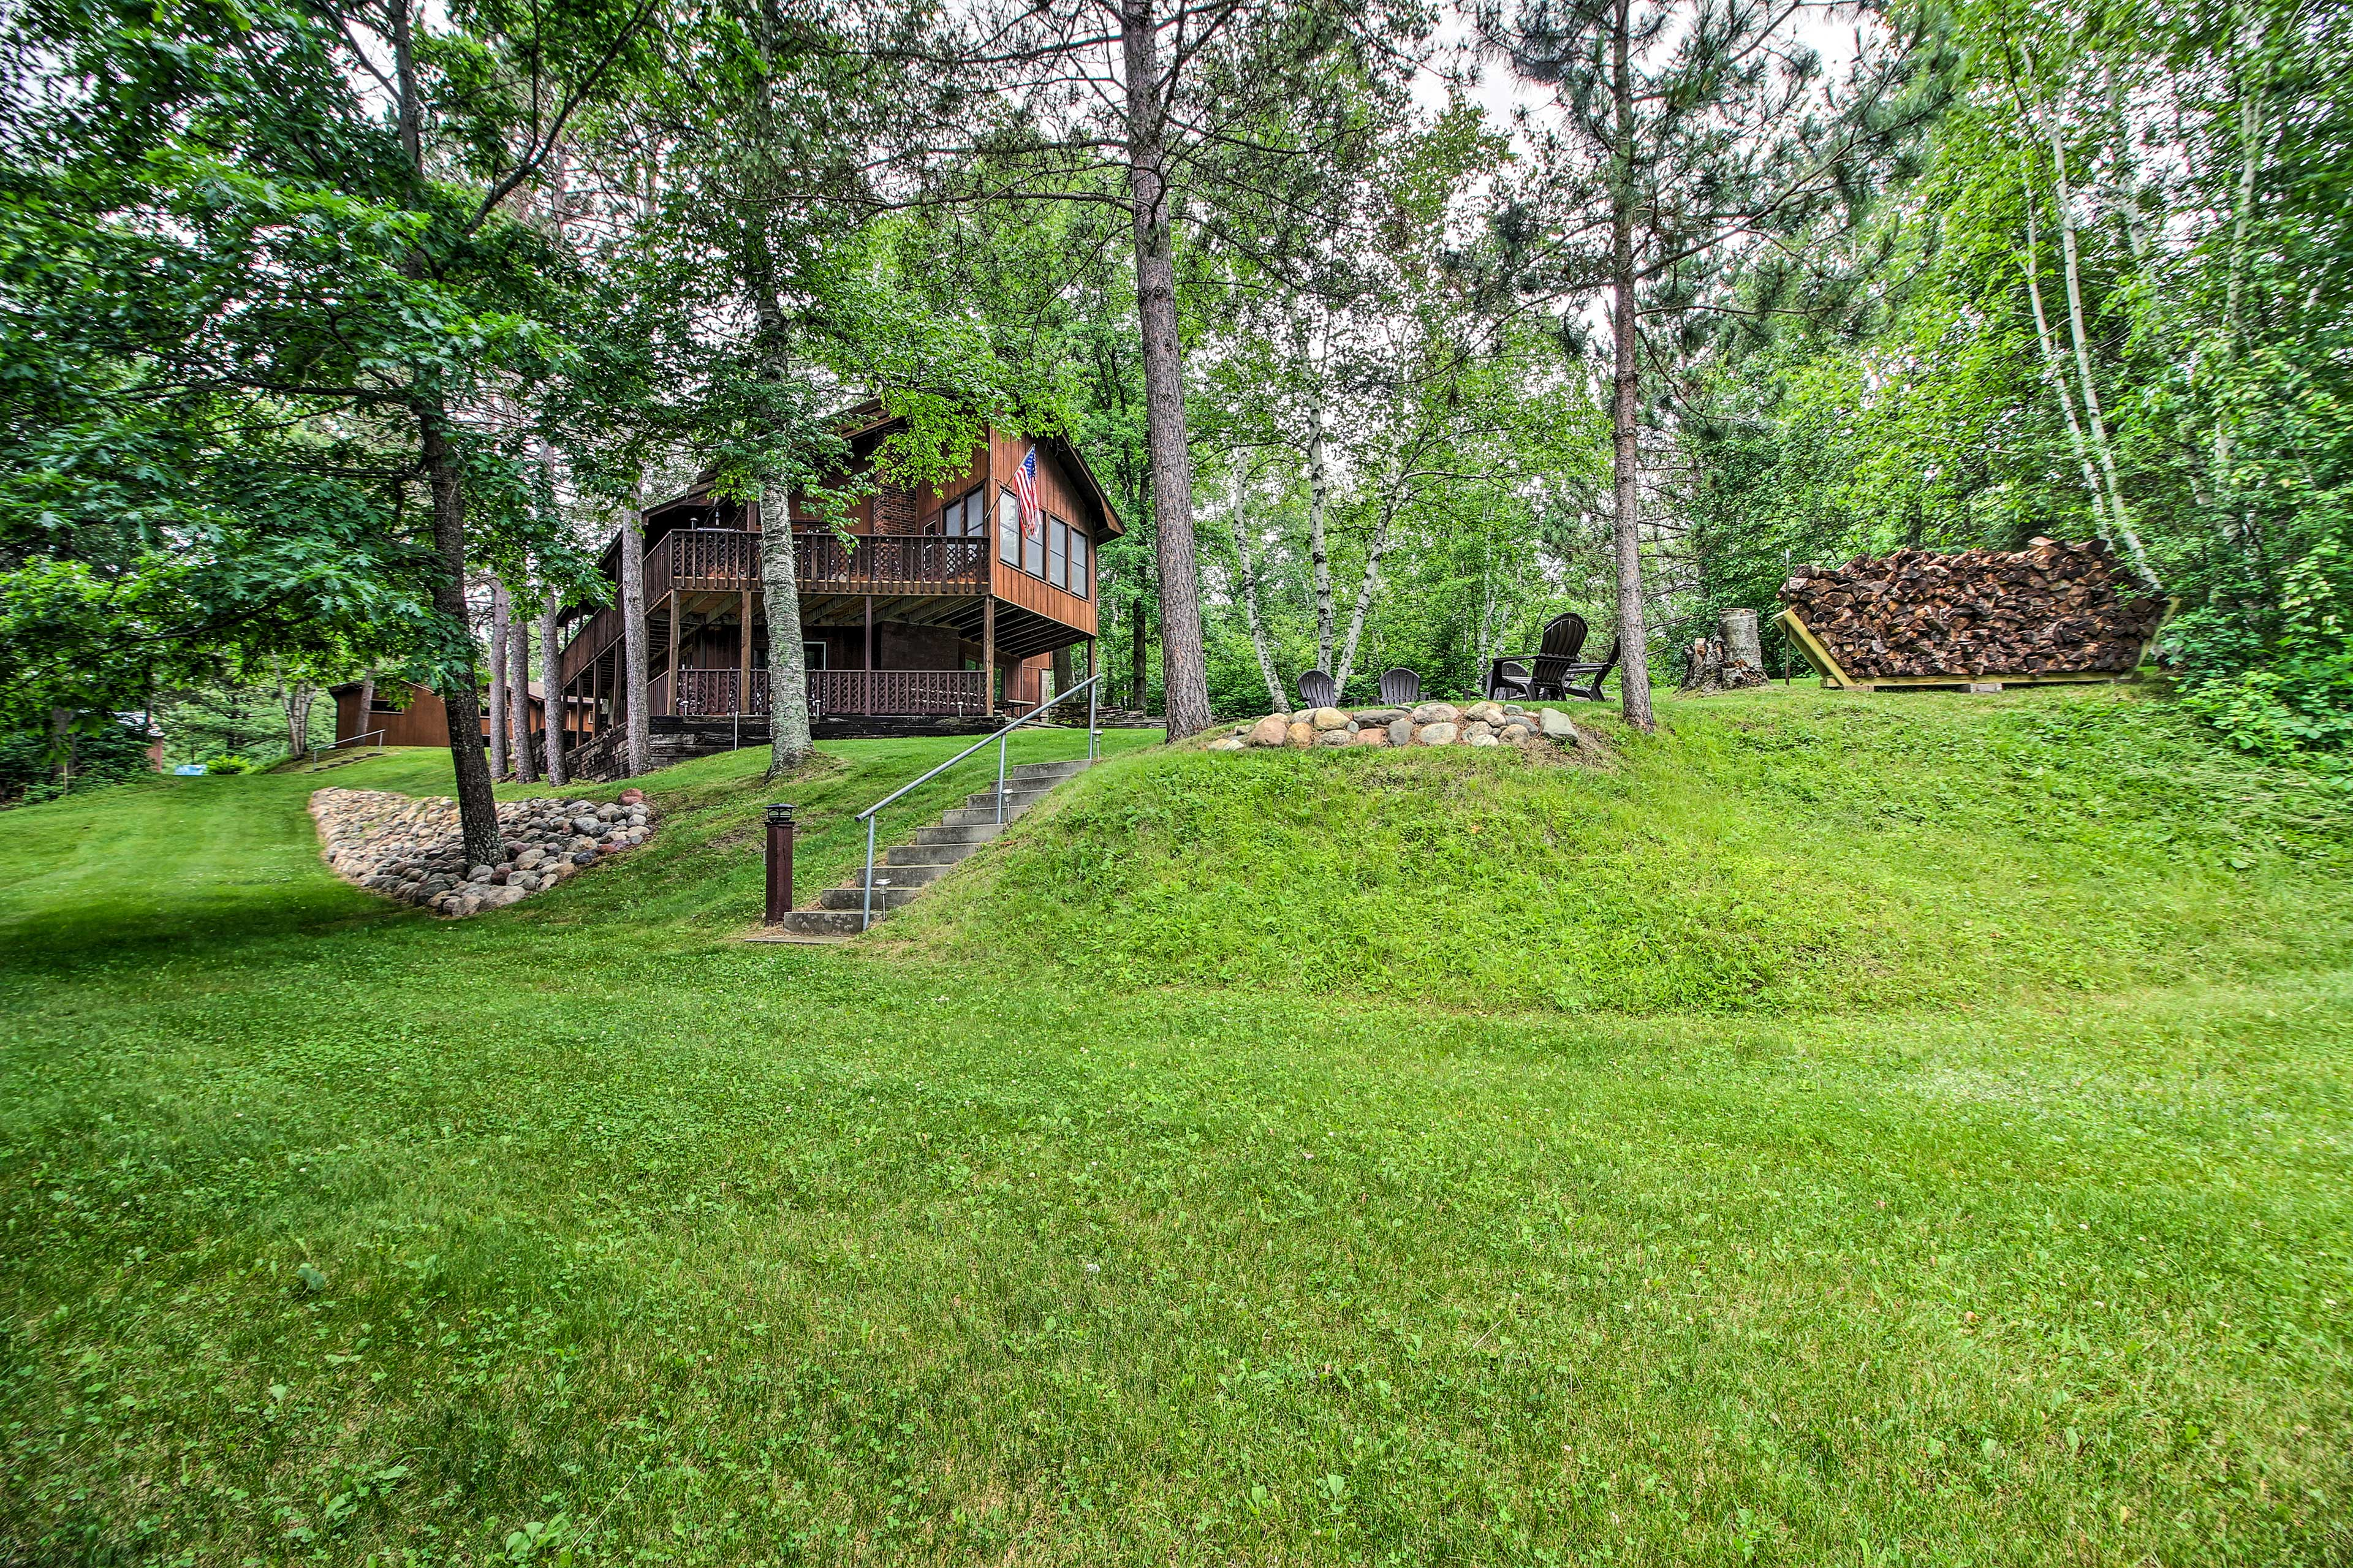 The backyard offers enough space for a wide variety of activities.